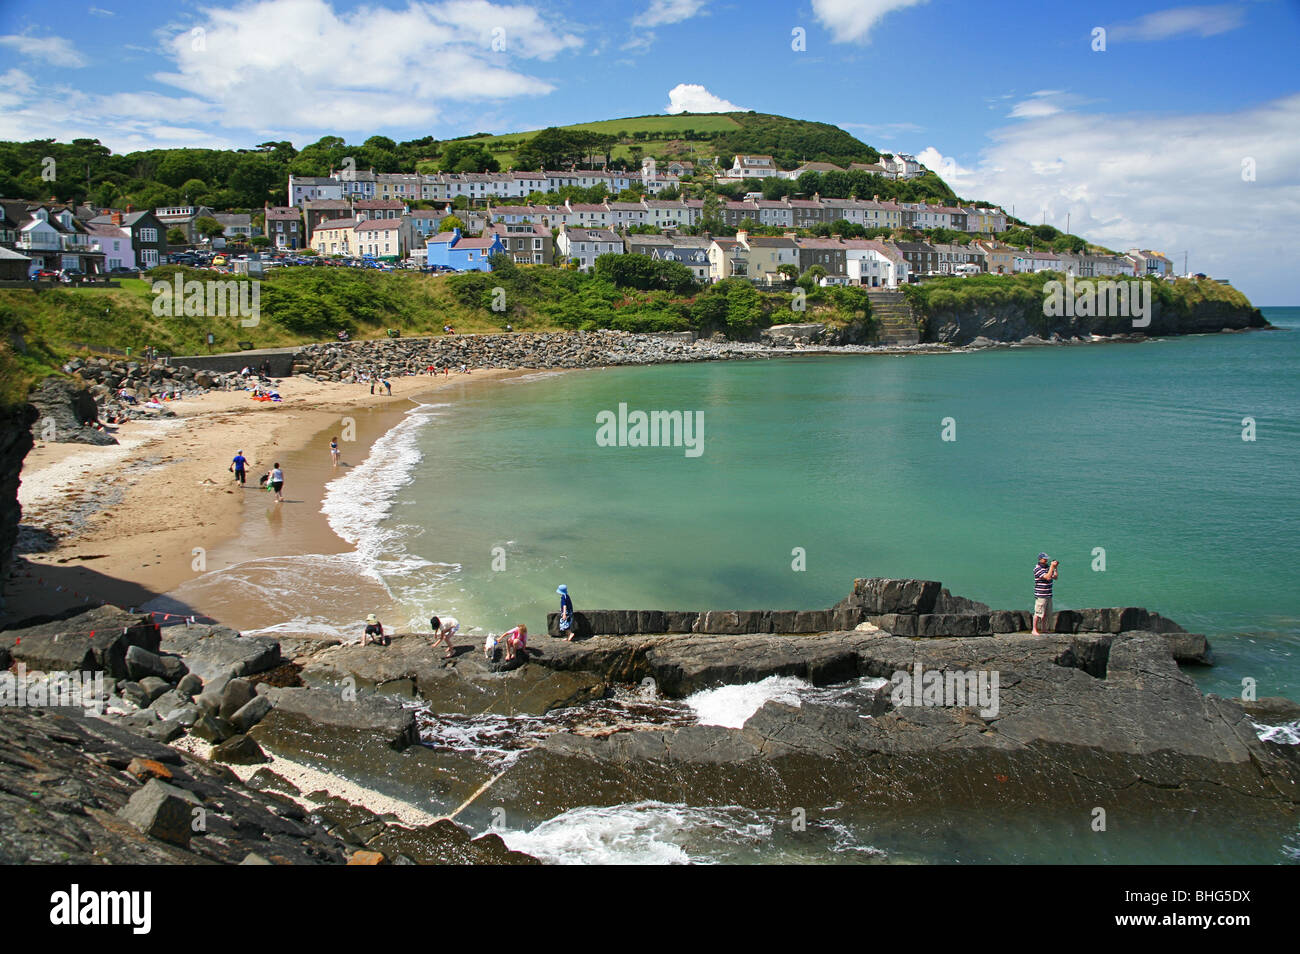 Beach at New Quay, Ceredigion, West Wales, UK - Stock Image